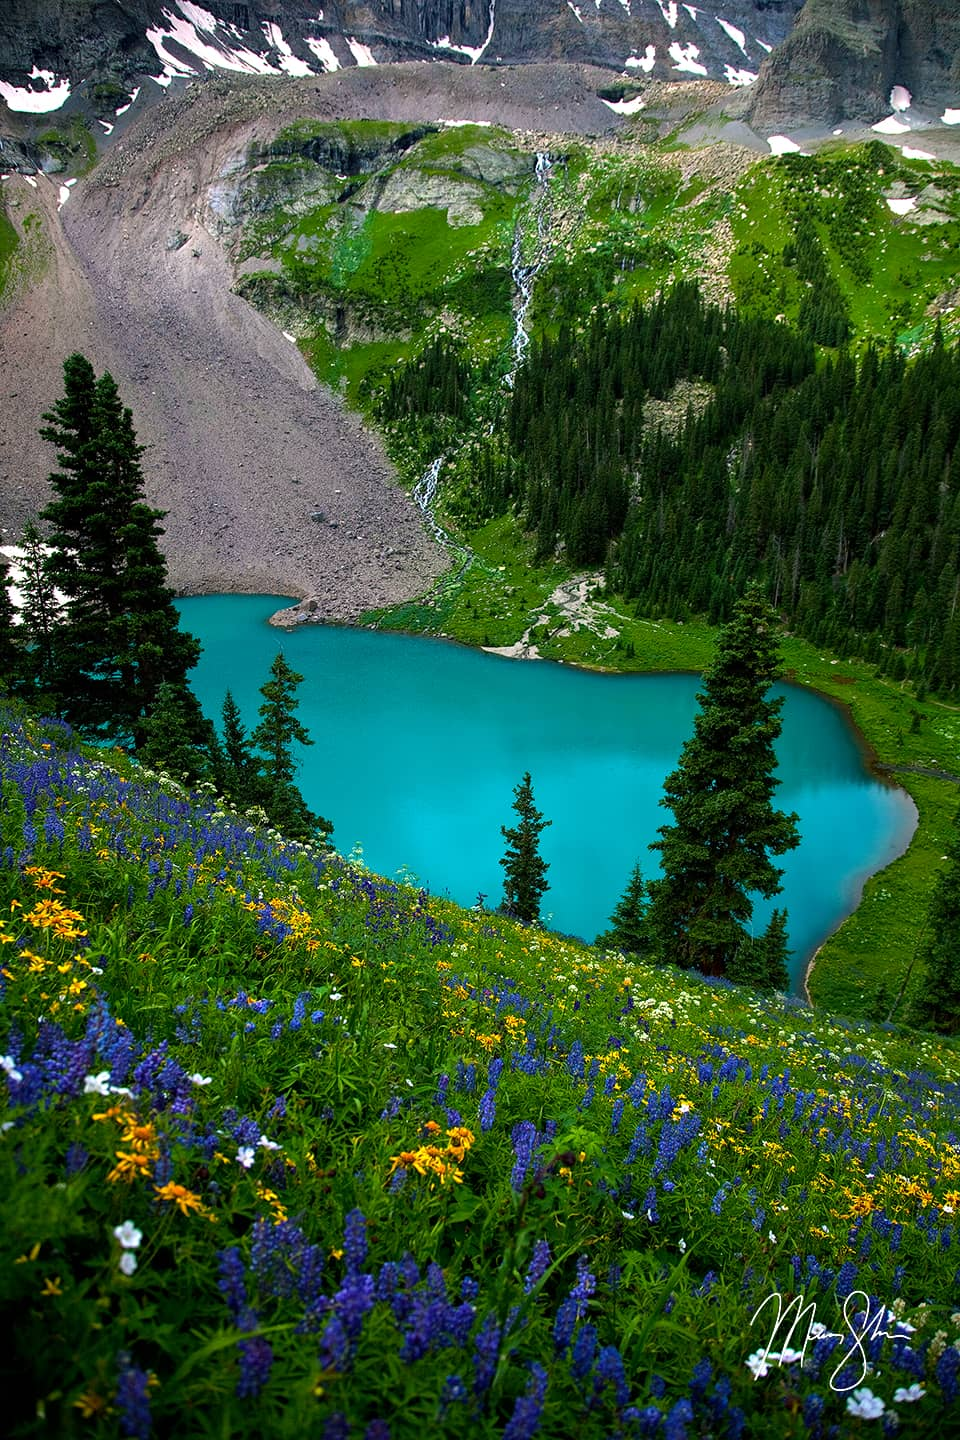 Wildflowers and Waterfalls at Blue Lake